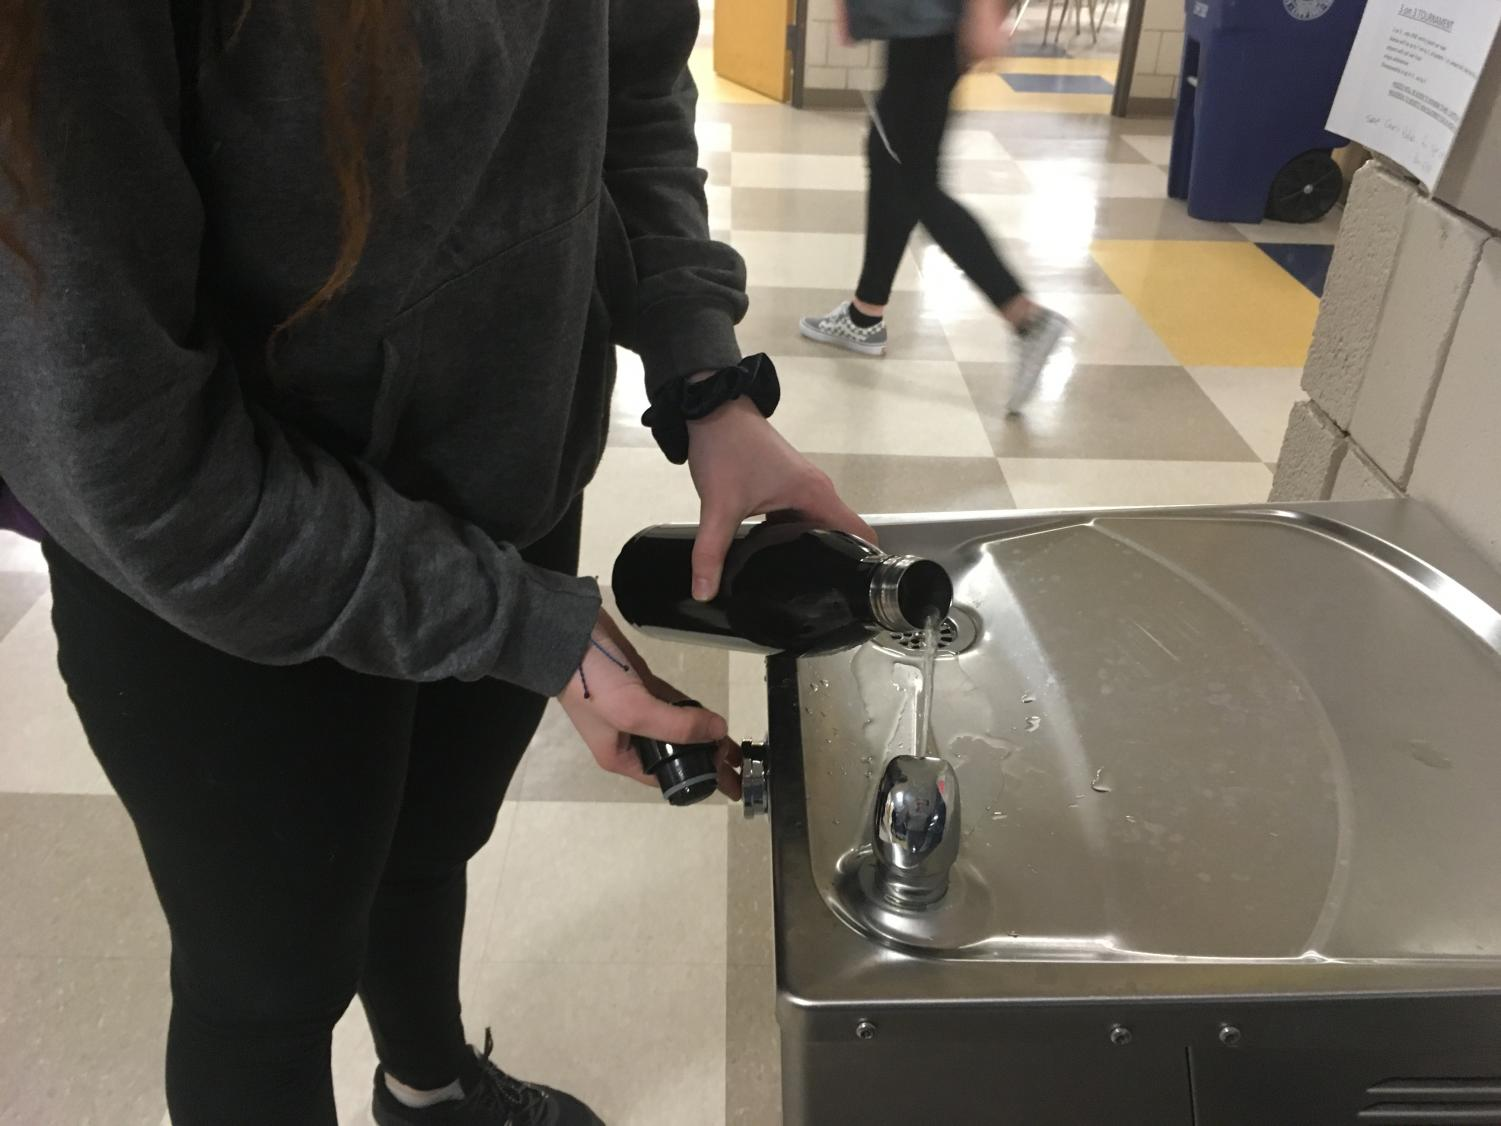 LHS Senior Megan Caless filling her water bottle from a bubbler at LHS